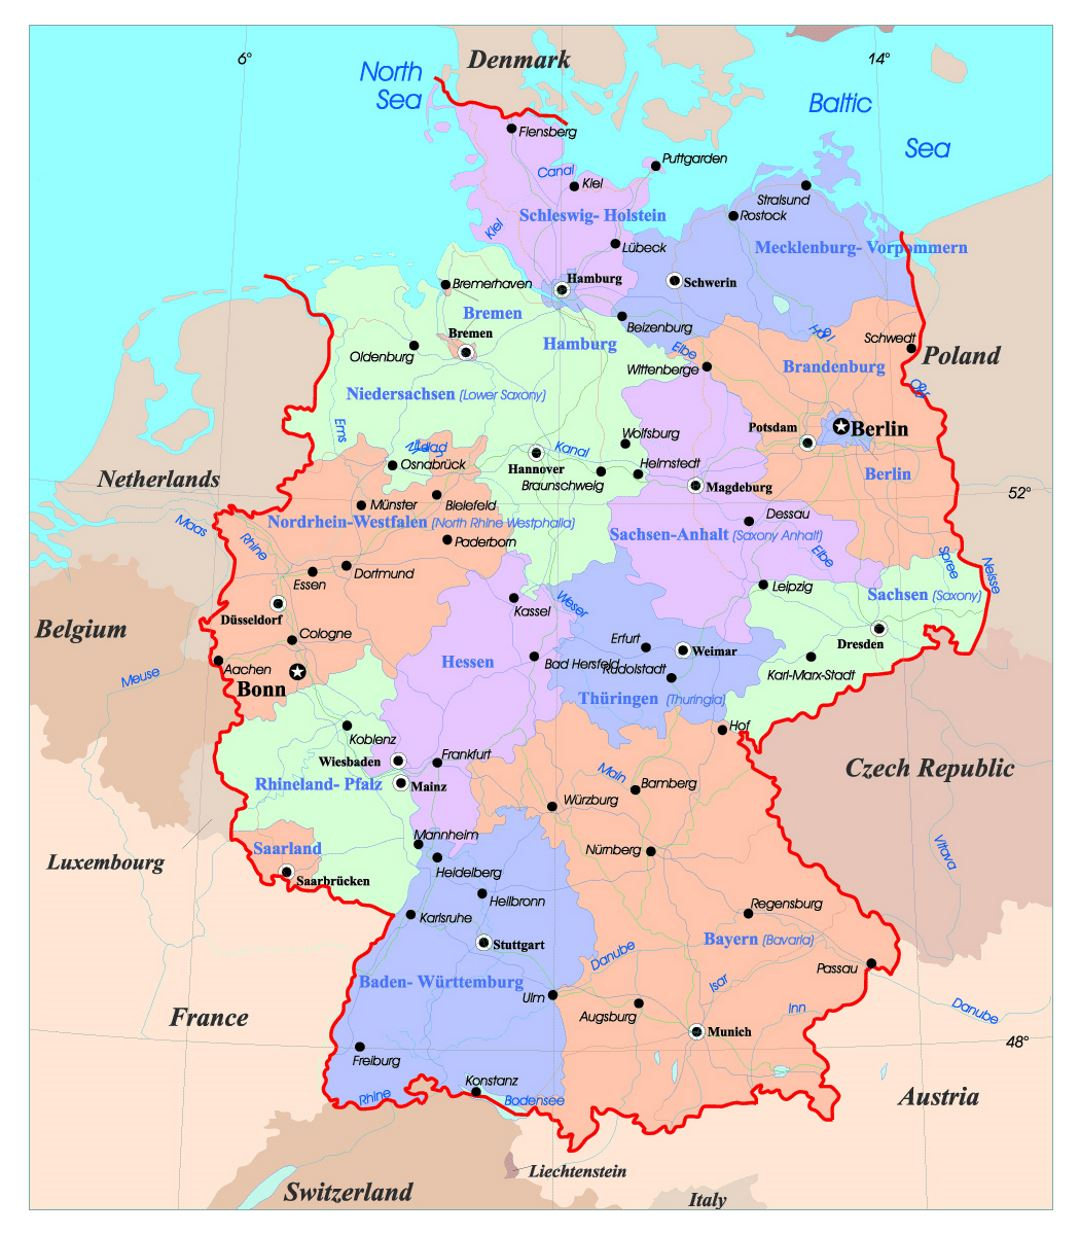 Detailed Administrative Map Of Germany With Major Cities Germany - Germany map with major cities